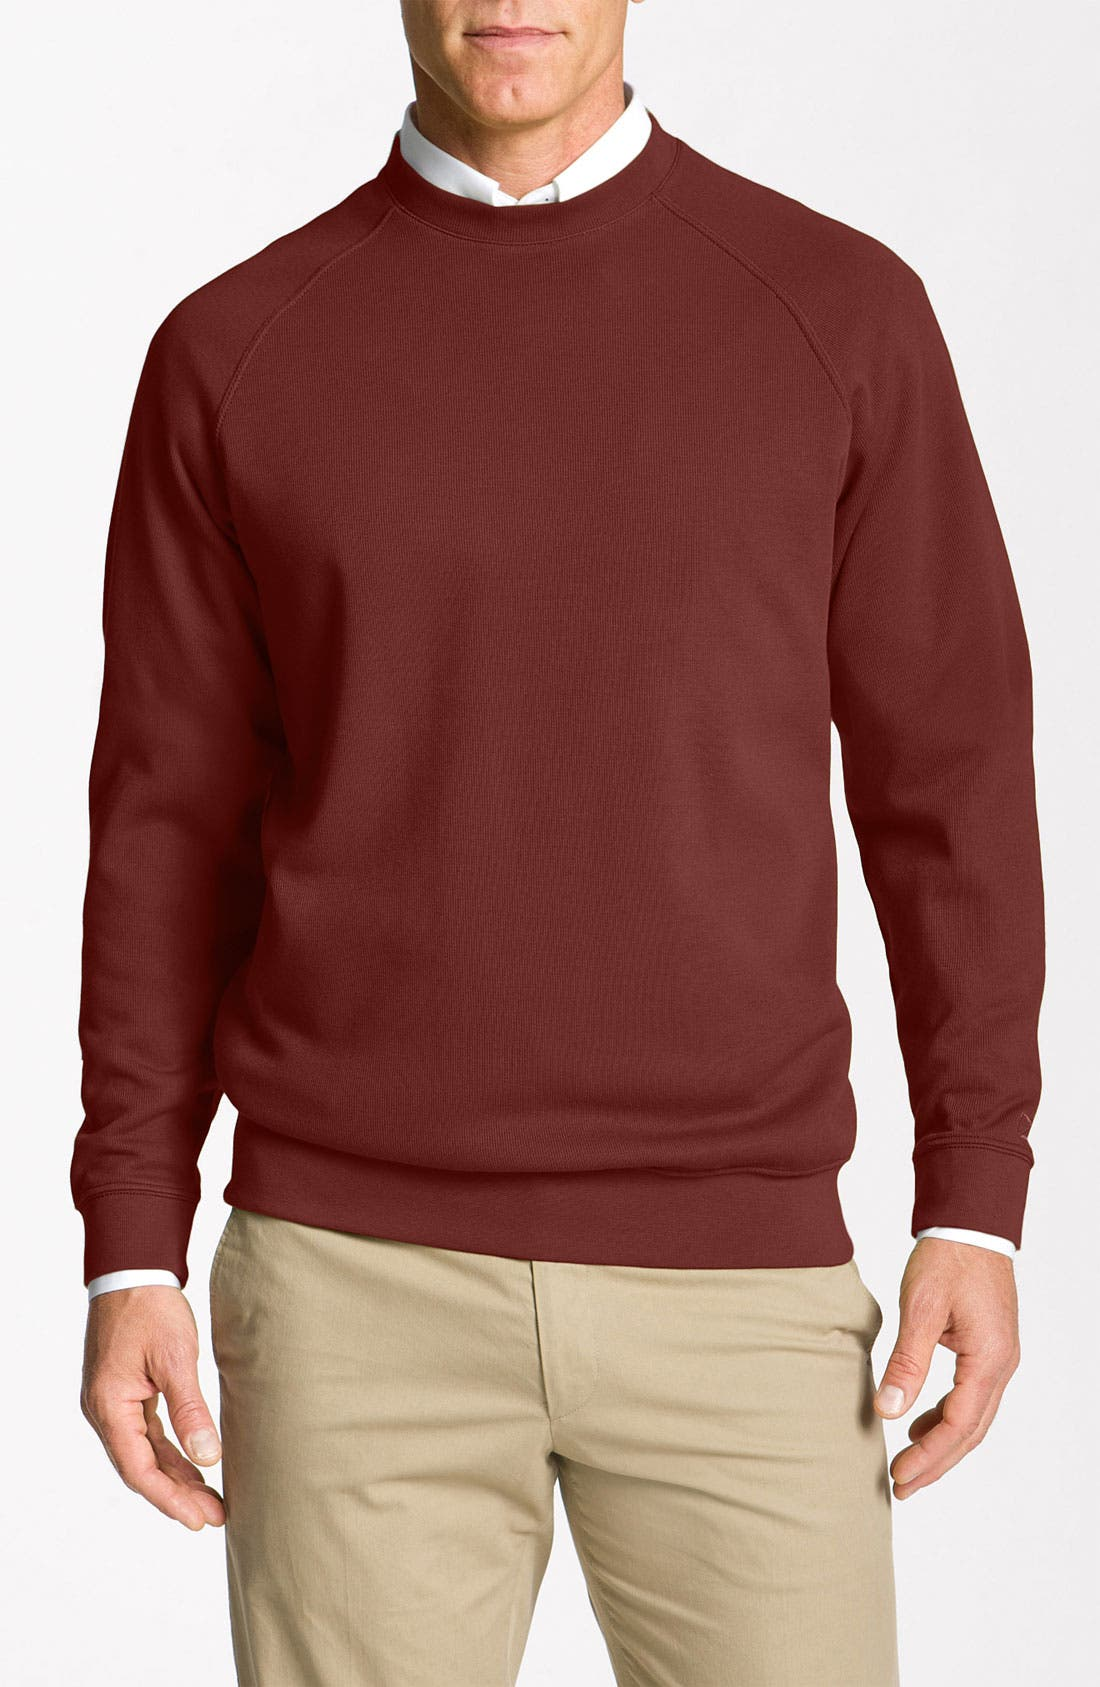 Alternate Image 1 Selected - Cutter & Buck 'Canoe Ridge' Crewneck Sweater (Big & Tall) (Online Exclusive)